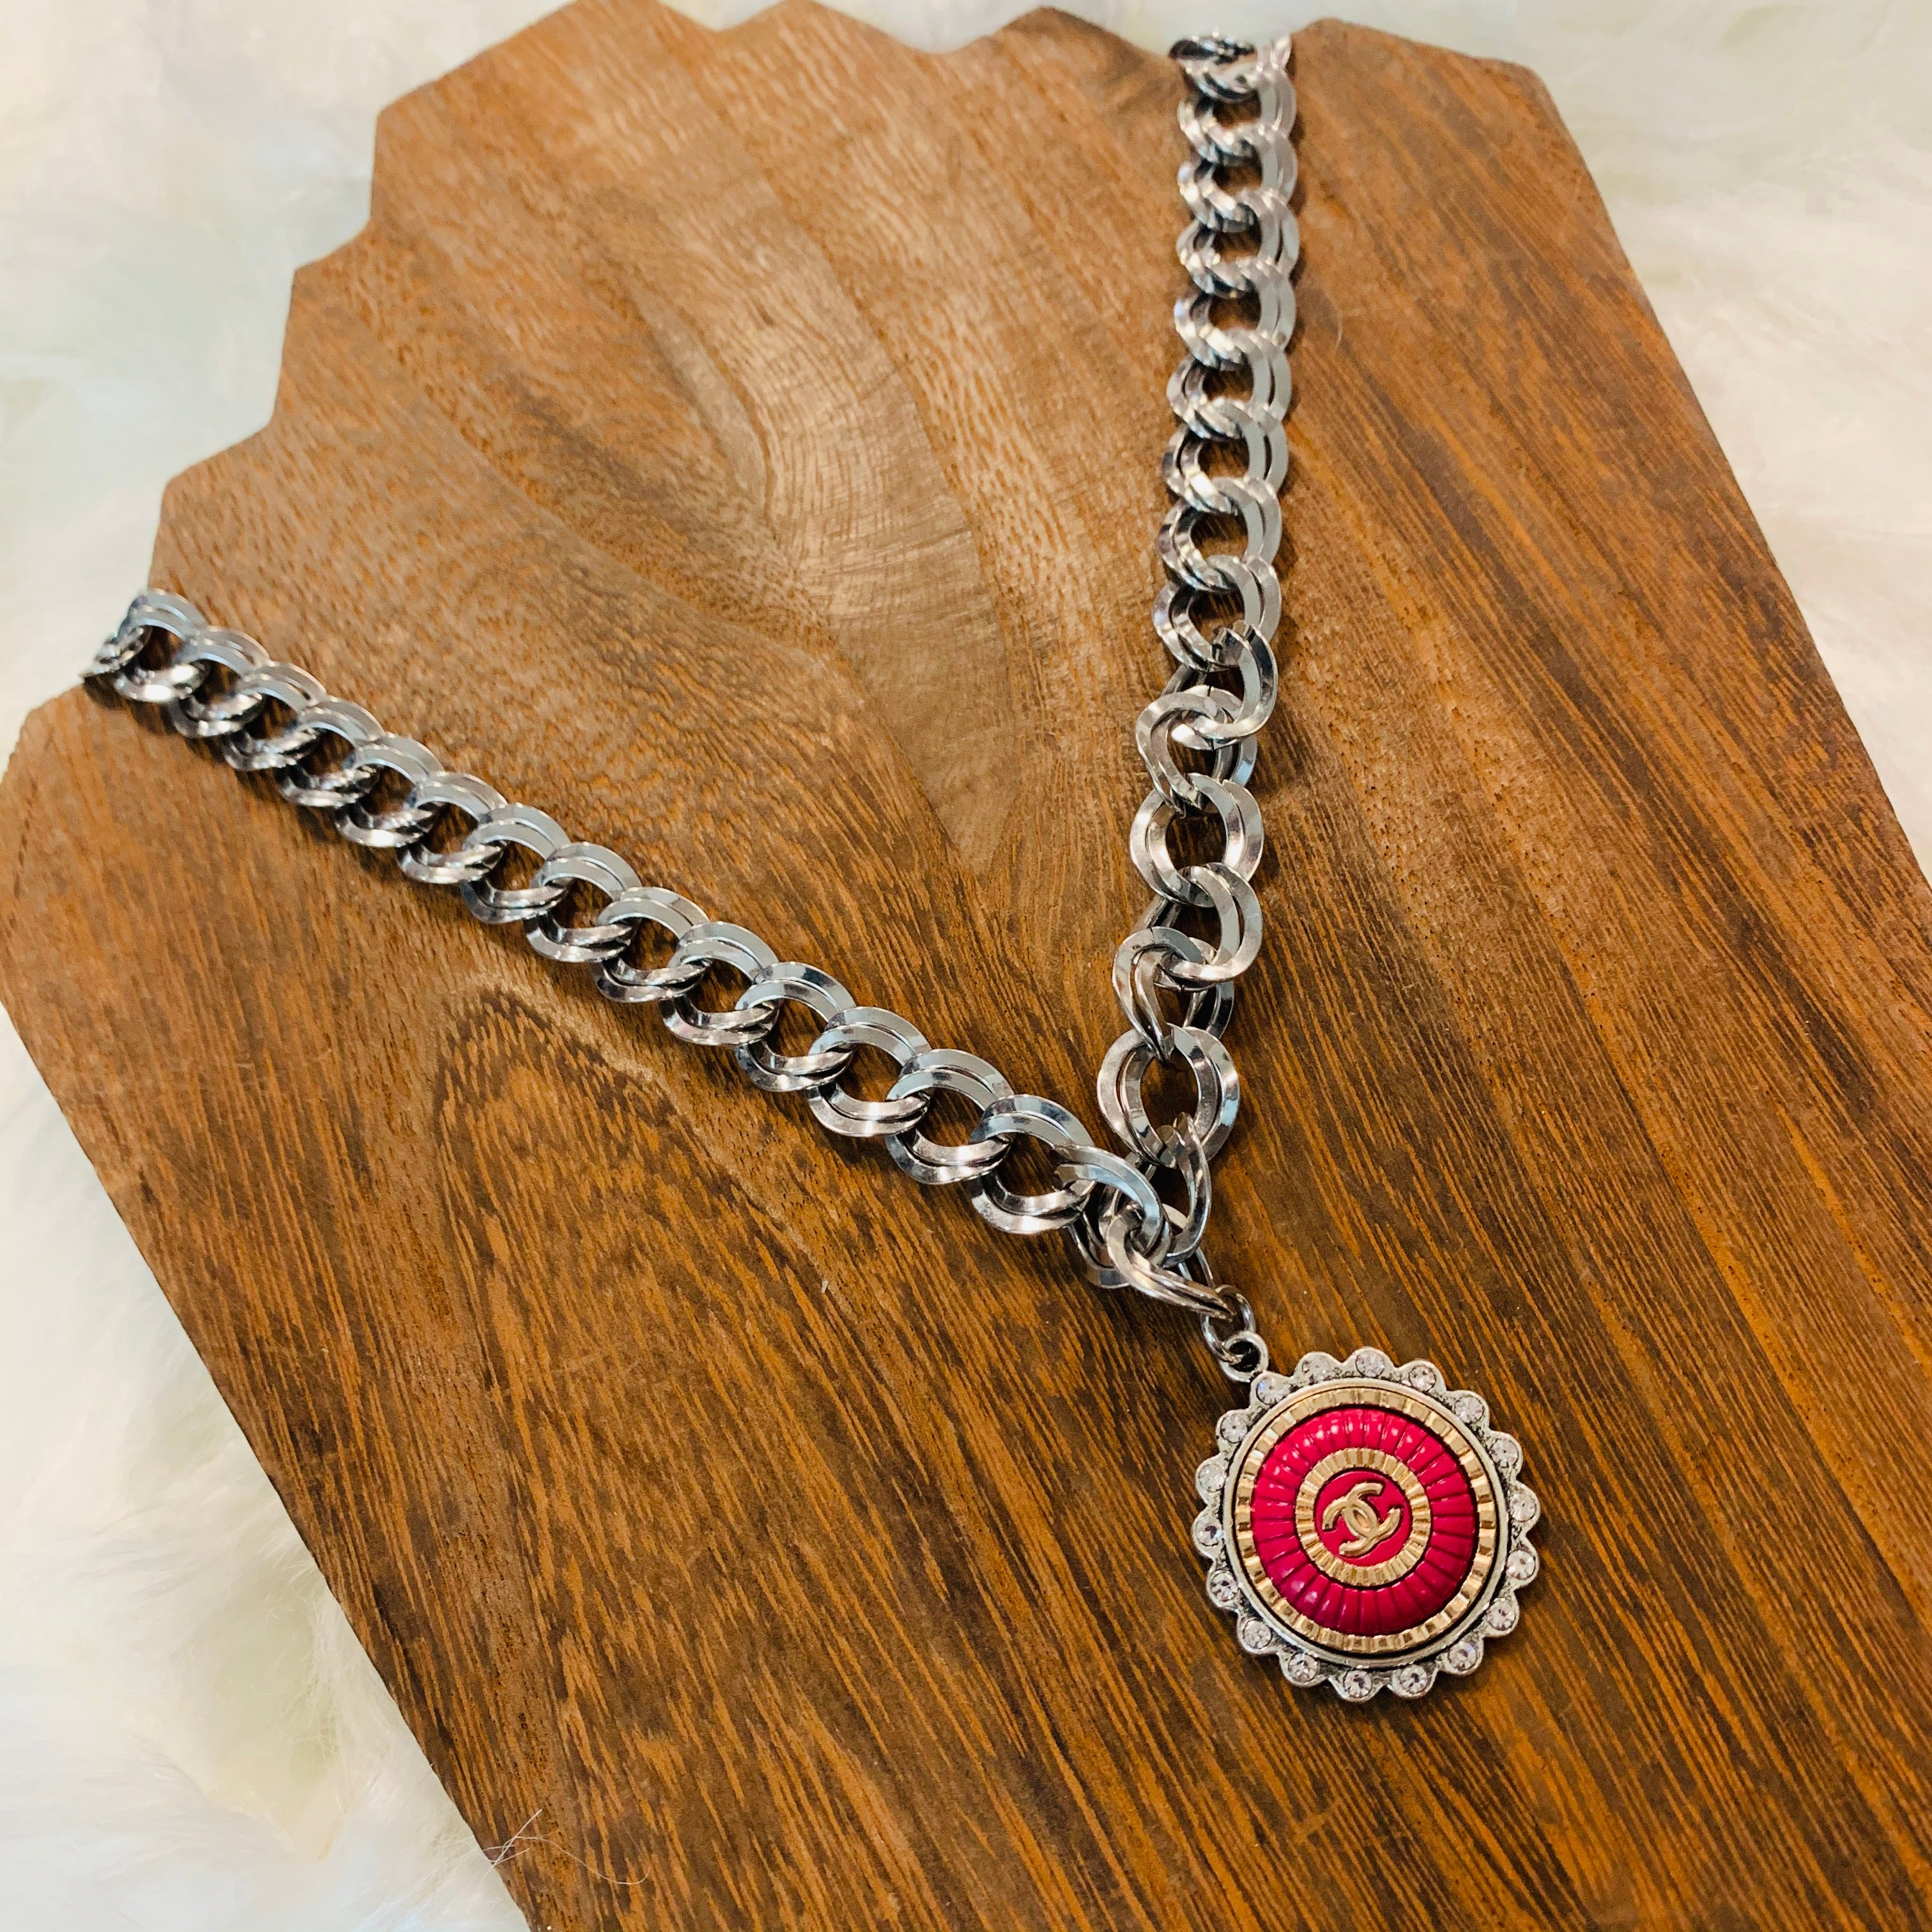 Silver Necklace With Vintage Pink Chanel Button